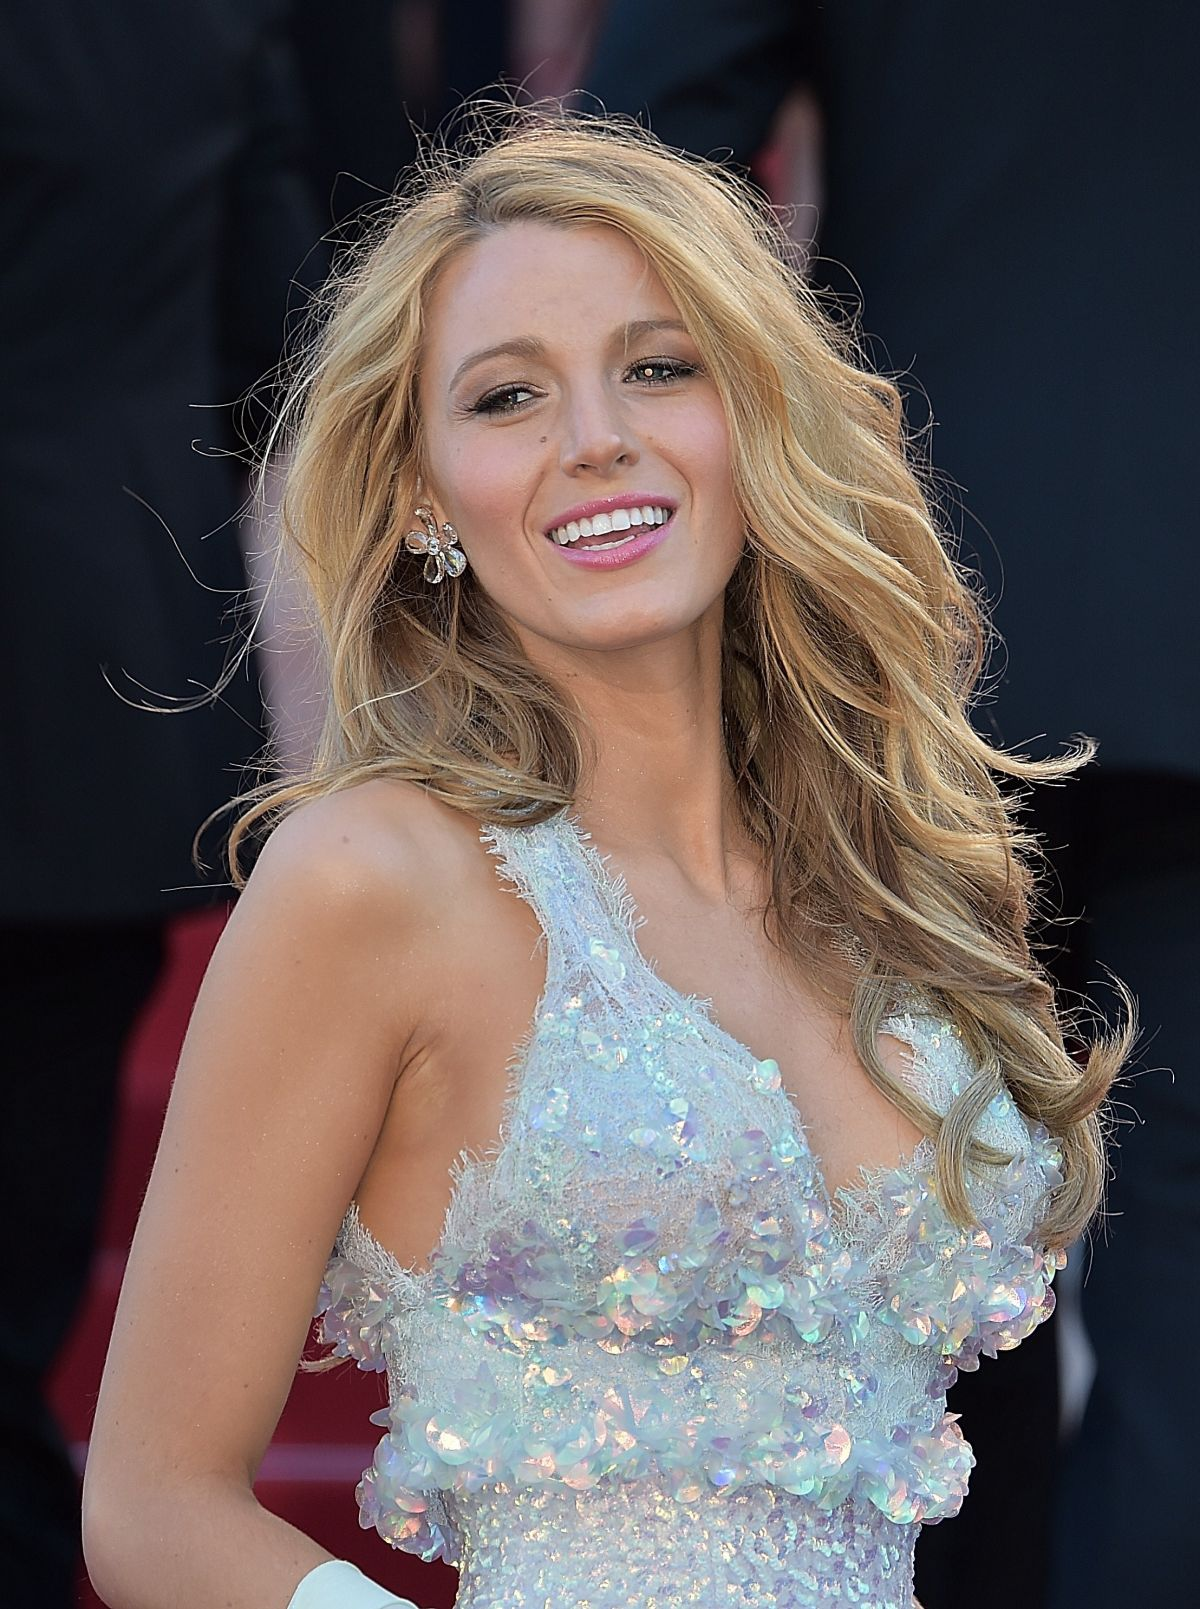 Blake Lively At Mr Turner Premiere At Cannes Film Festival